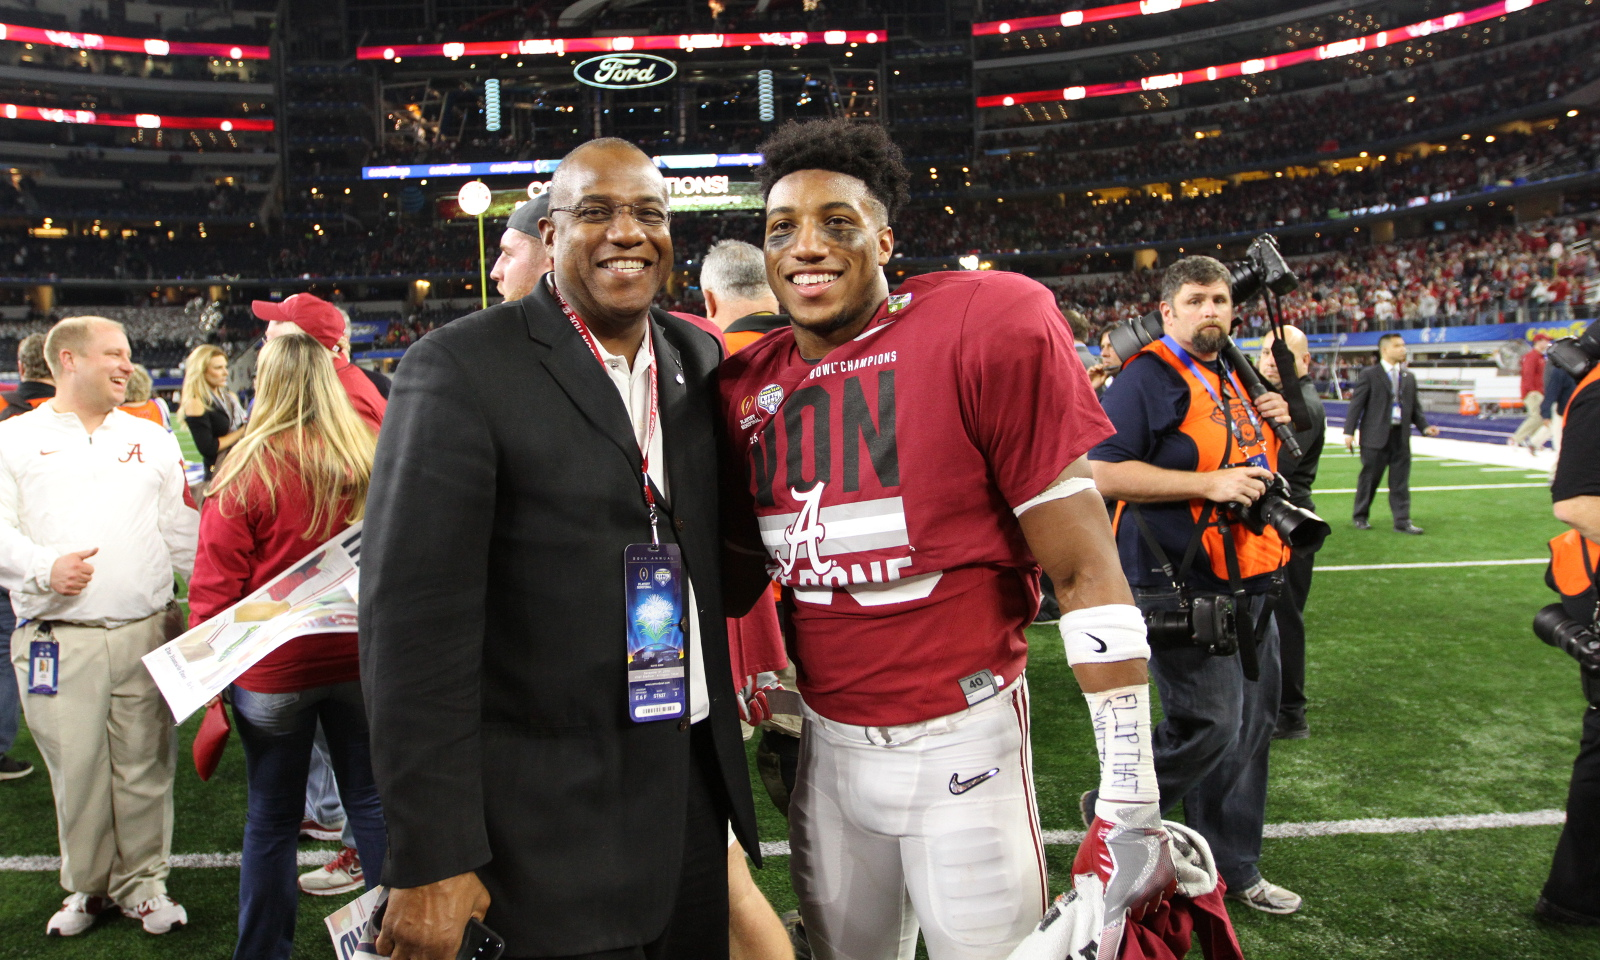 LISTEN: Two segments with the former Crimson Tide great Bobby Humphrey!